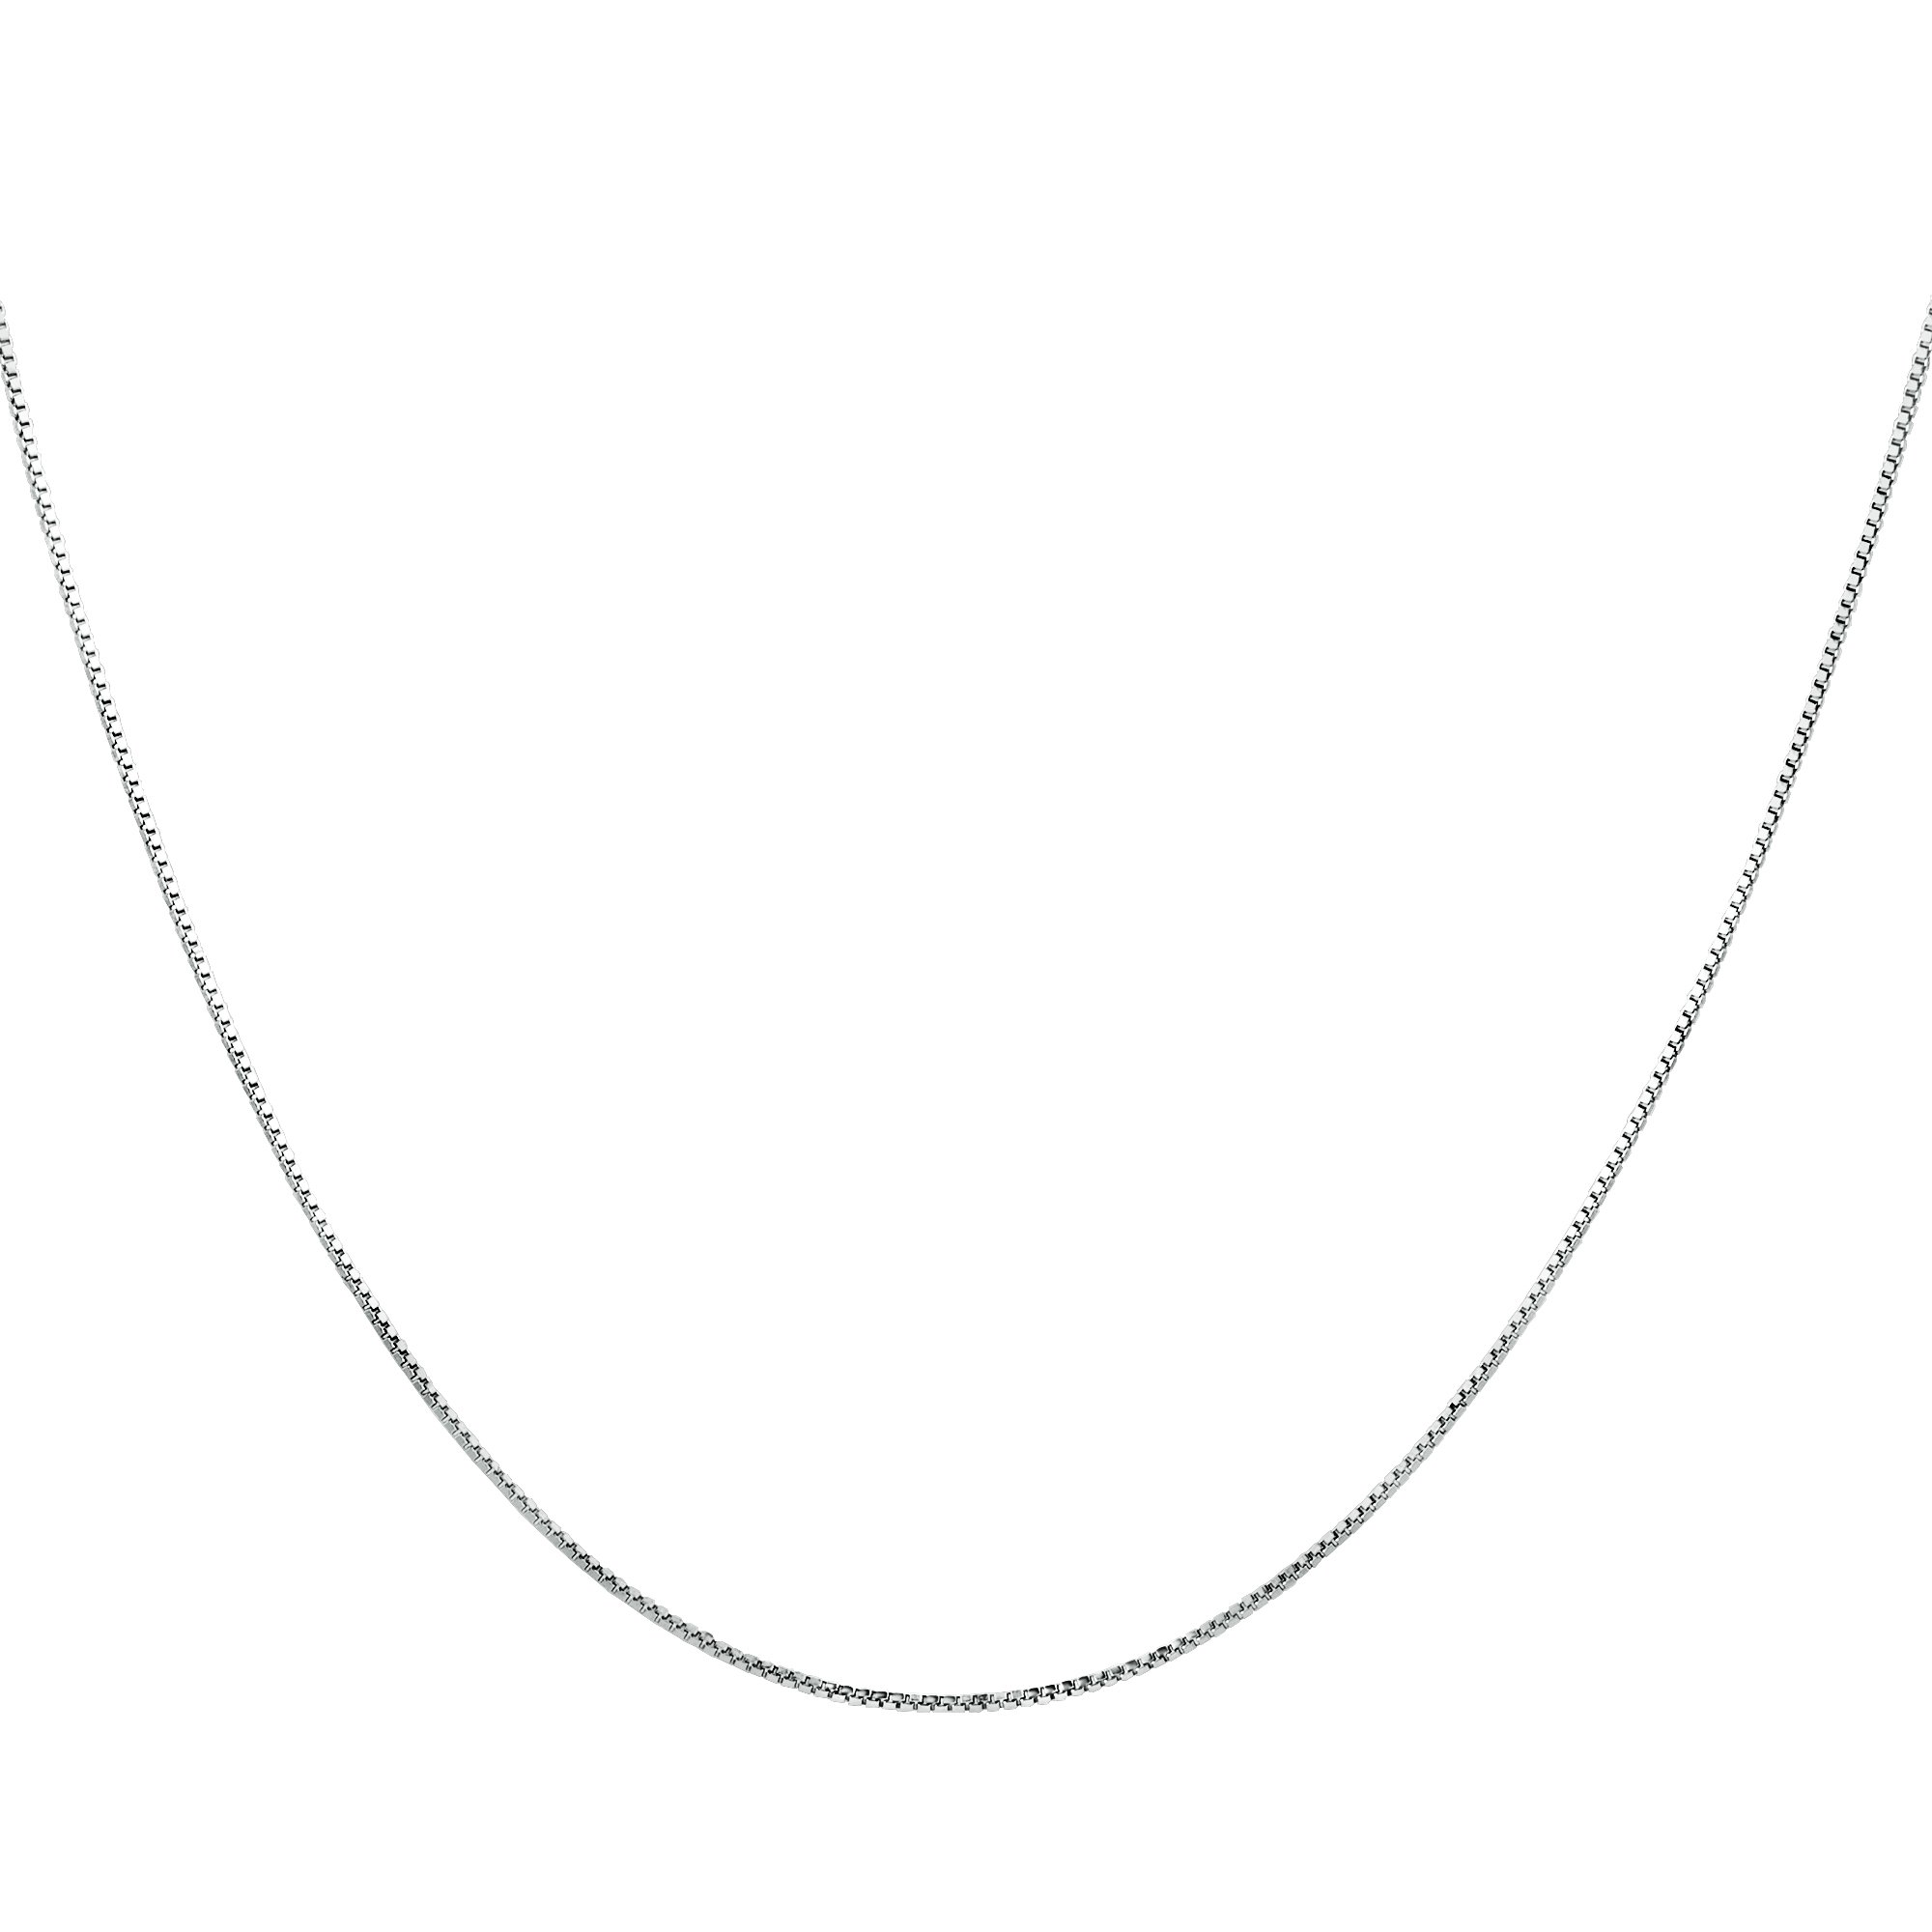 Flashing God 925 Sterling Silver 0.8mm Box Chain Super Thin Strong Italian Crafted Necklace 14-36 inches